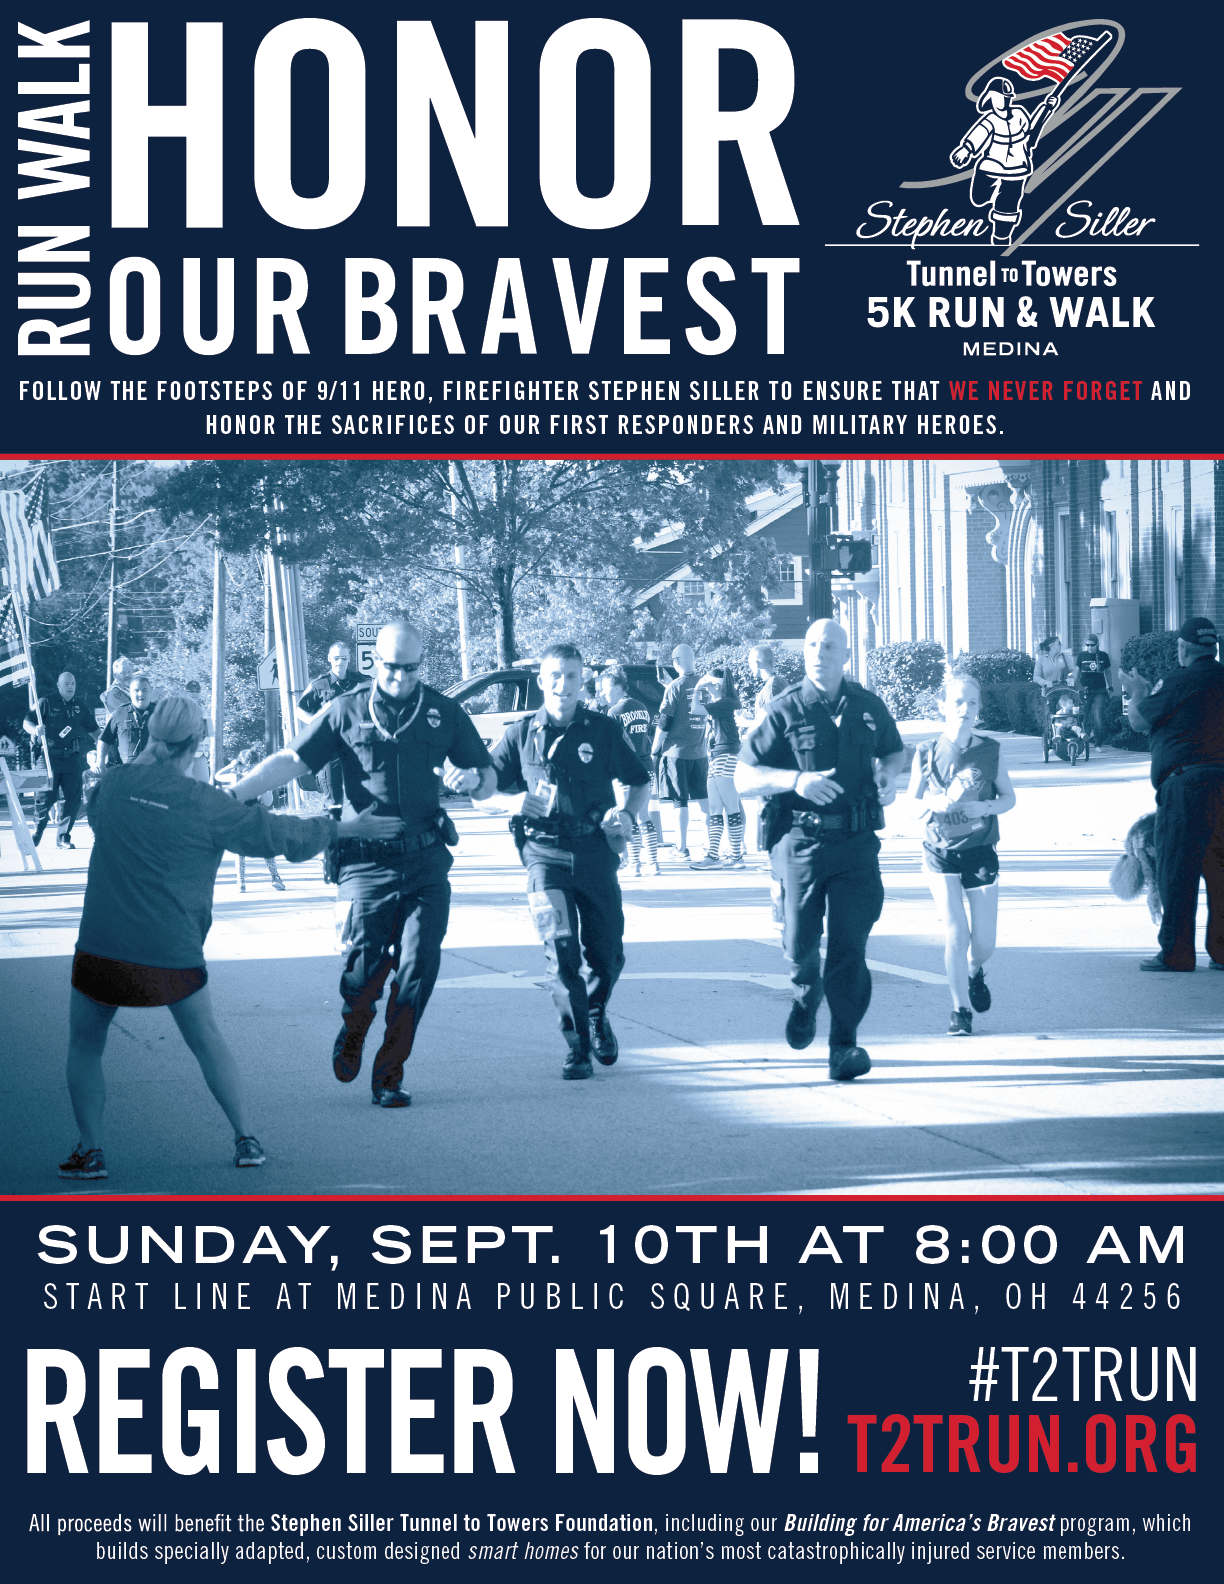 2017 Tunnel to Towers 5K Run & Walk Medina - Stephen Siller